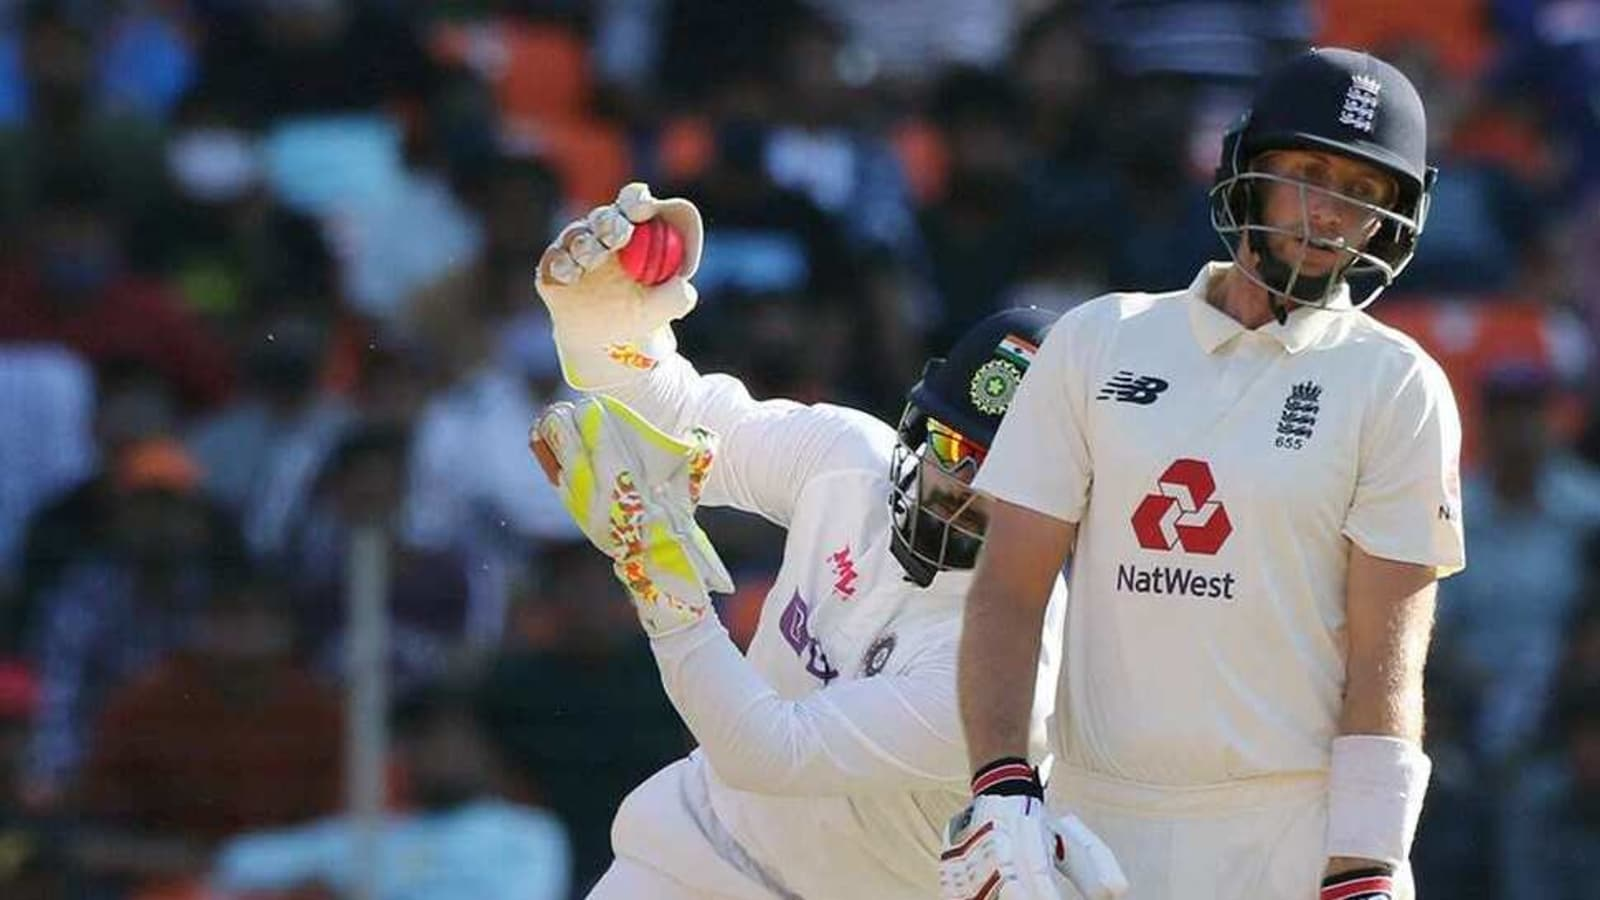 'Please talk about Stuart Broad's 8 for 15, What kind of a wicket was that': Ojha slams criticism of 3rd Test pitch - Hindustan Times